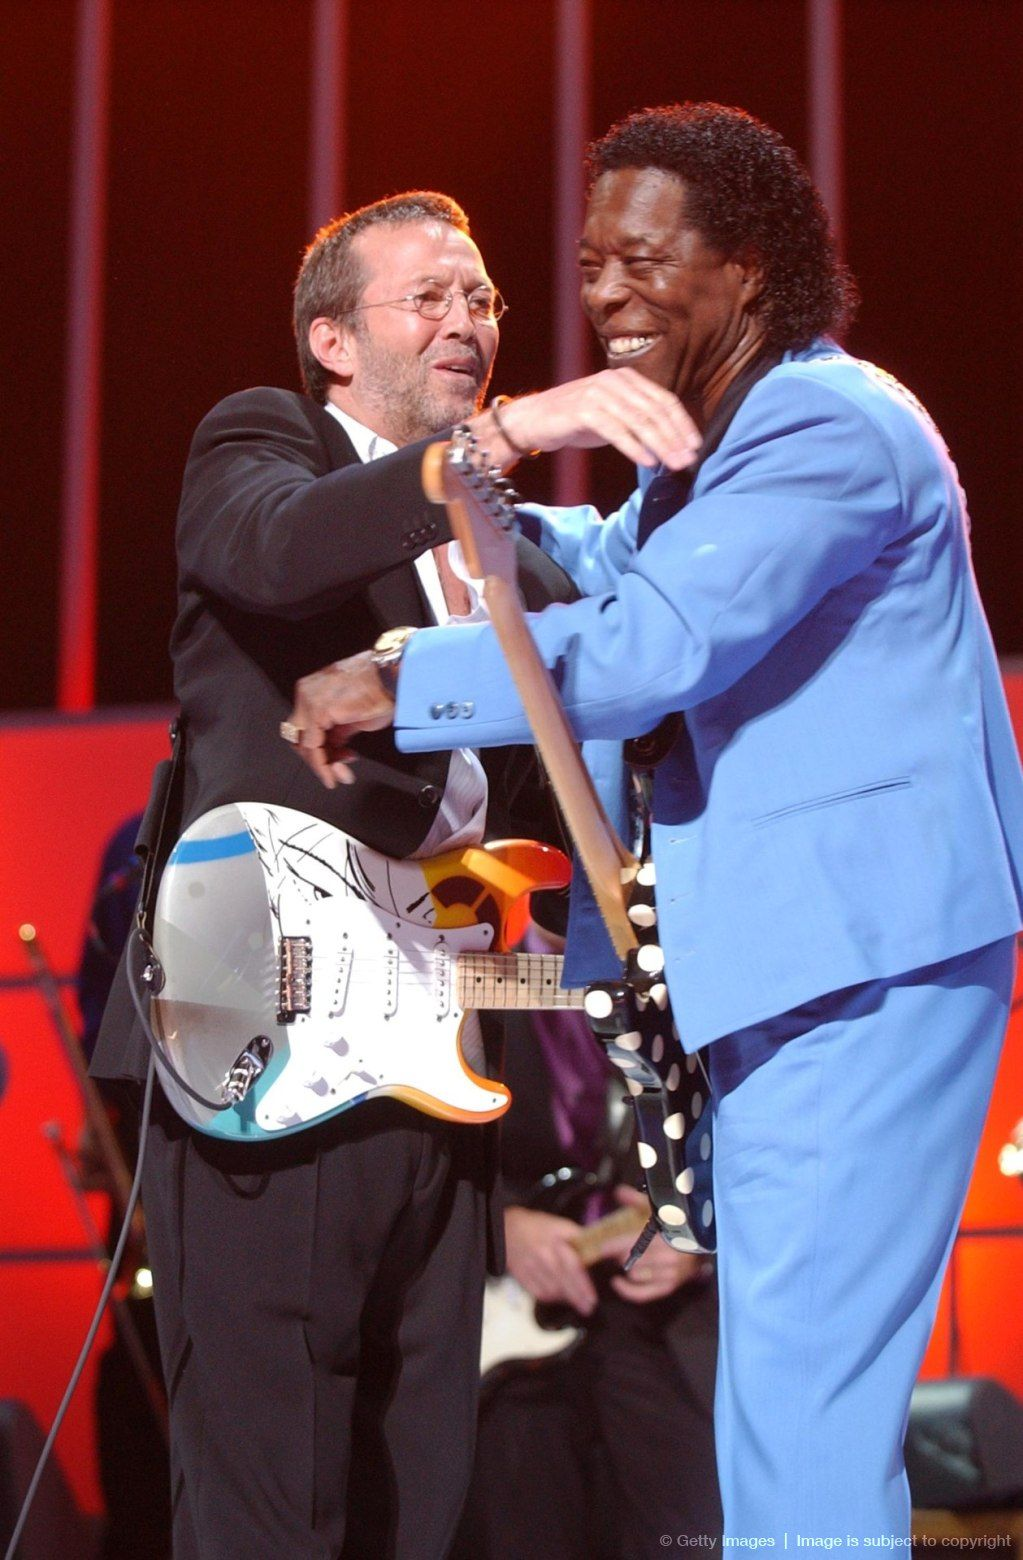 Eric Clapton Buddy Guy Https Www Youtube Com Playlist List Pl2qctiiqlo7xuuprvjm4lr8l2exb Qnxw Spfreload 10 Eric Clapton Eric Clapton Guitar Buddy Guy